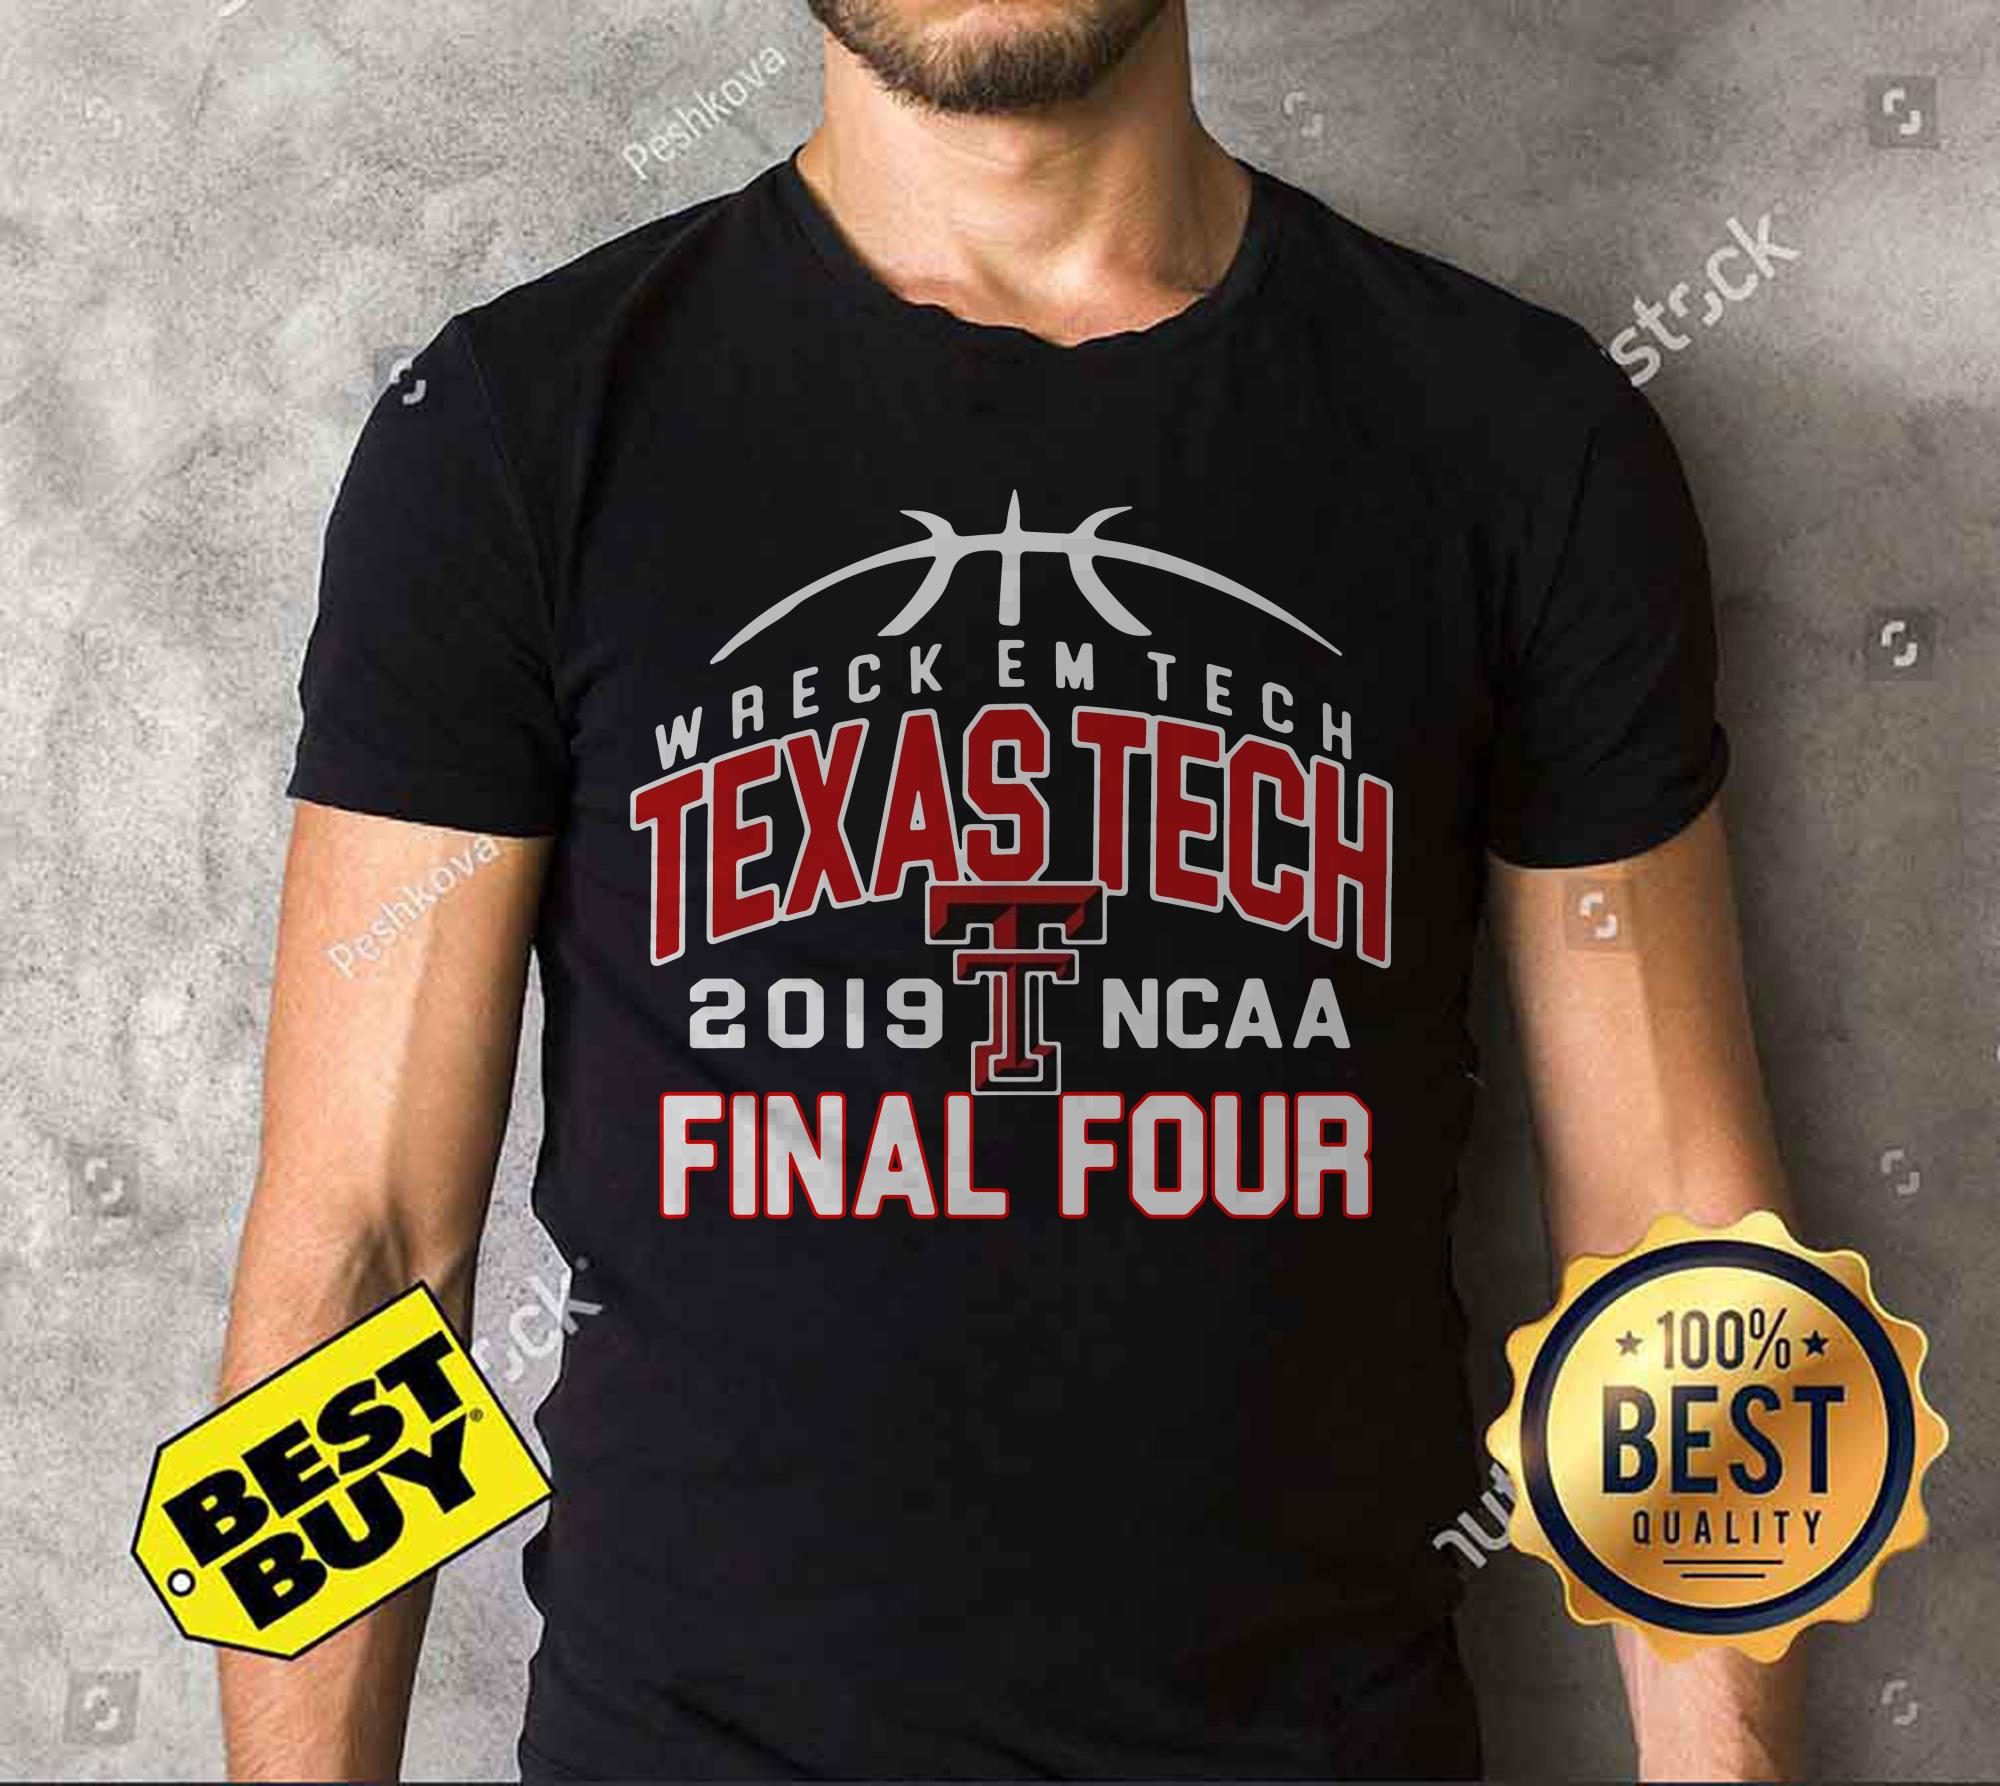 Wreckem Tech Texas Tech 2019 Ncaa Final Four v-neck